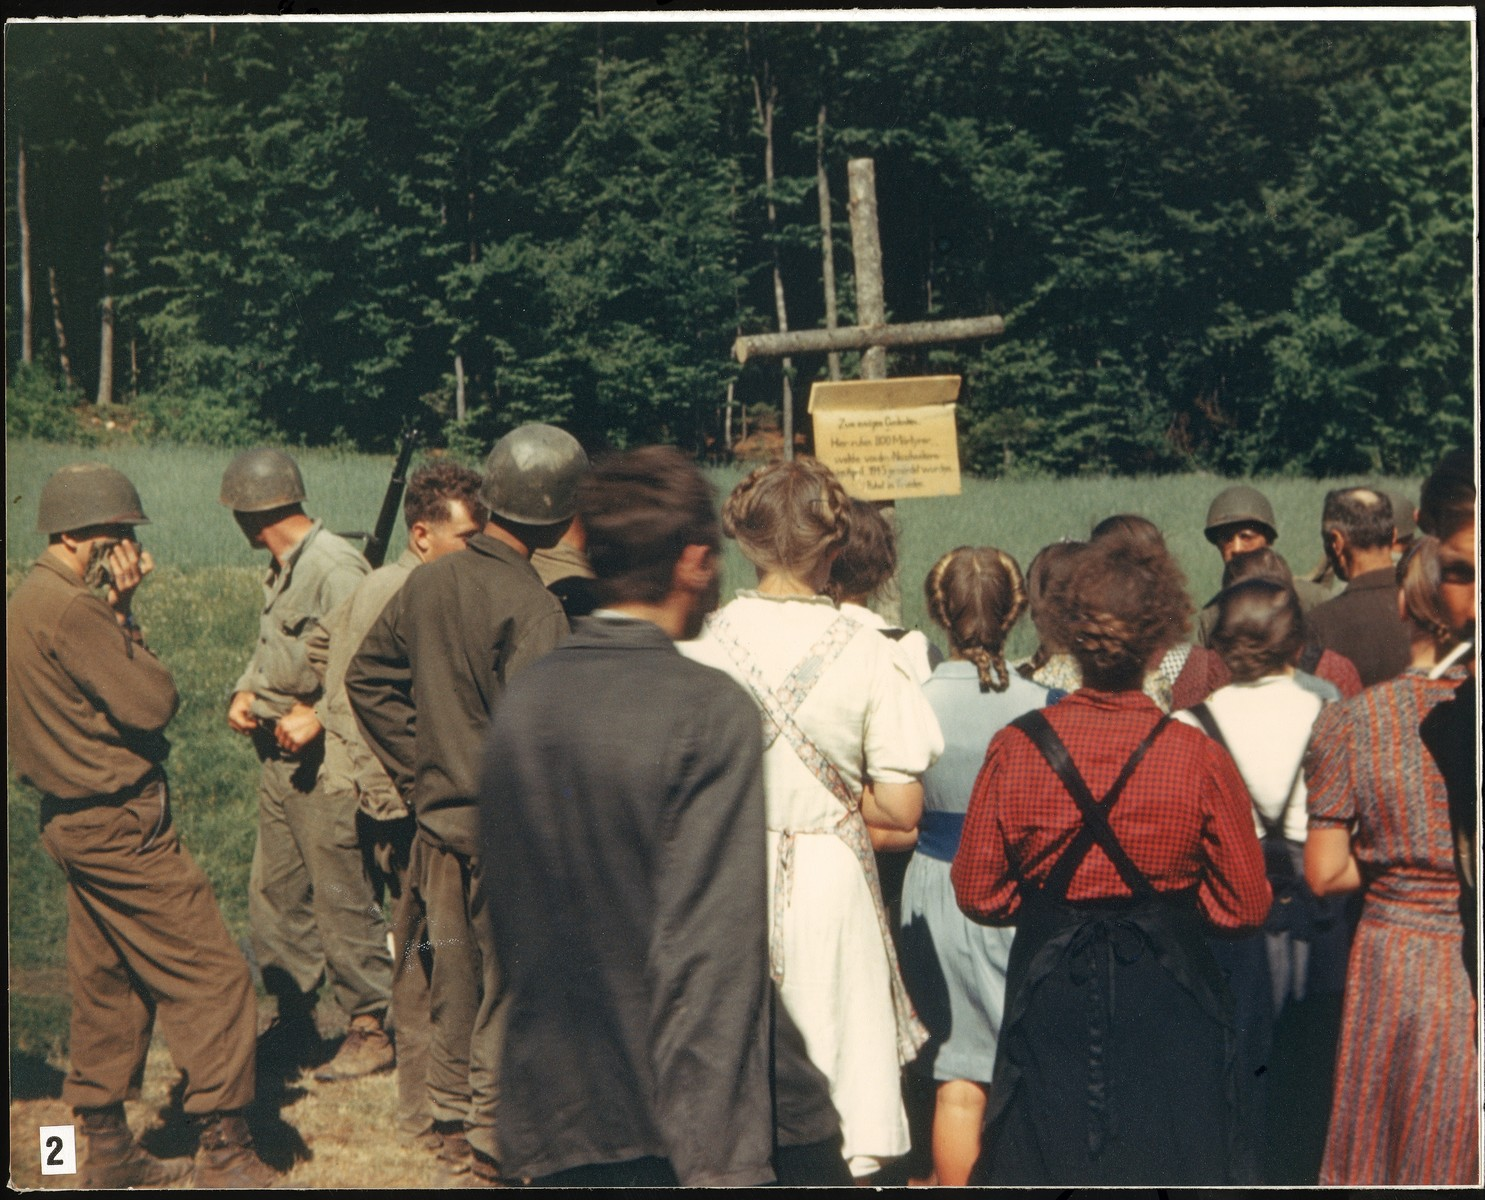 Under the direction of American soldiers, German civilians are forced to read the sign erected by the U.S. Army to mark the site of the Nammering atrocity.